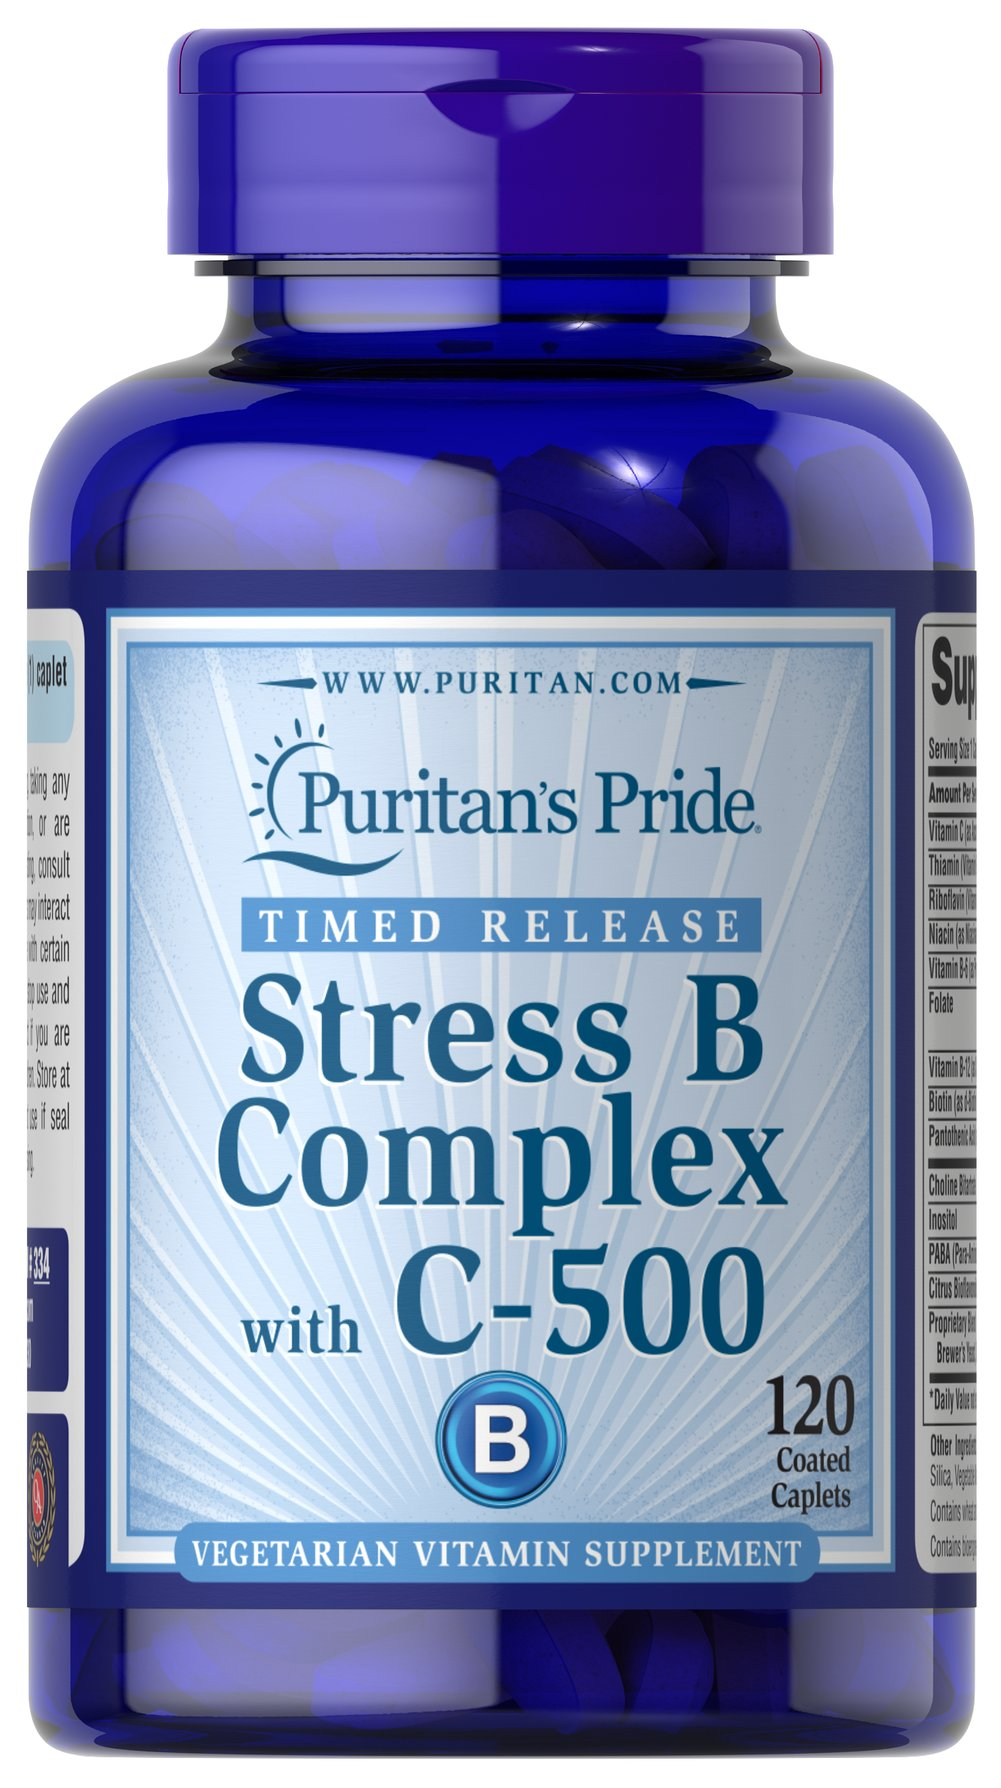 Stress Vitamin B-Complex with Vitamin C-500 Timed Release  <p>Timed-Release Stress Vitamin B Complex with Vitamin C 500 provides an excellent source of B Complex vitamins to help safeguard a sufficient daily intake.** The B Vitamins, which are essential for the maintenance of healthy nervous tissue, each play a role in energy metabolism in the body.** The 500 mg of Vitamin C is added to help support immune function.**</p> 120 Caplets  $38.99